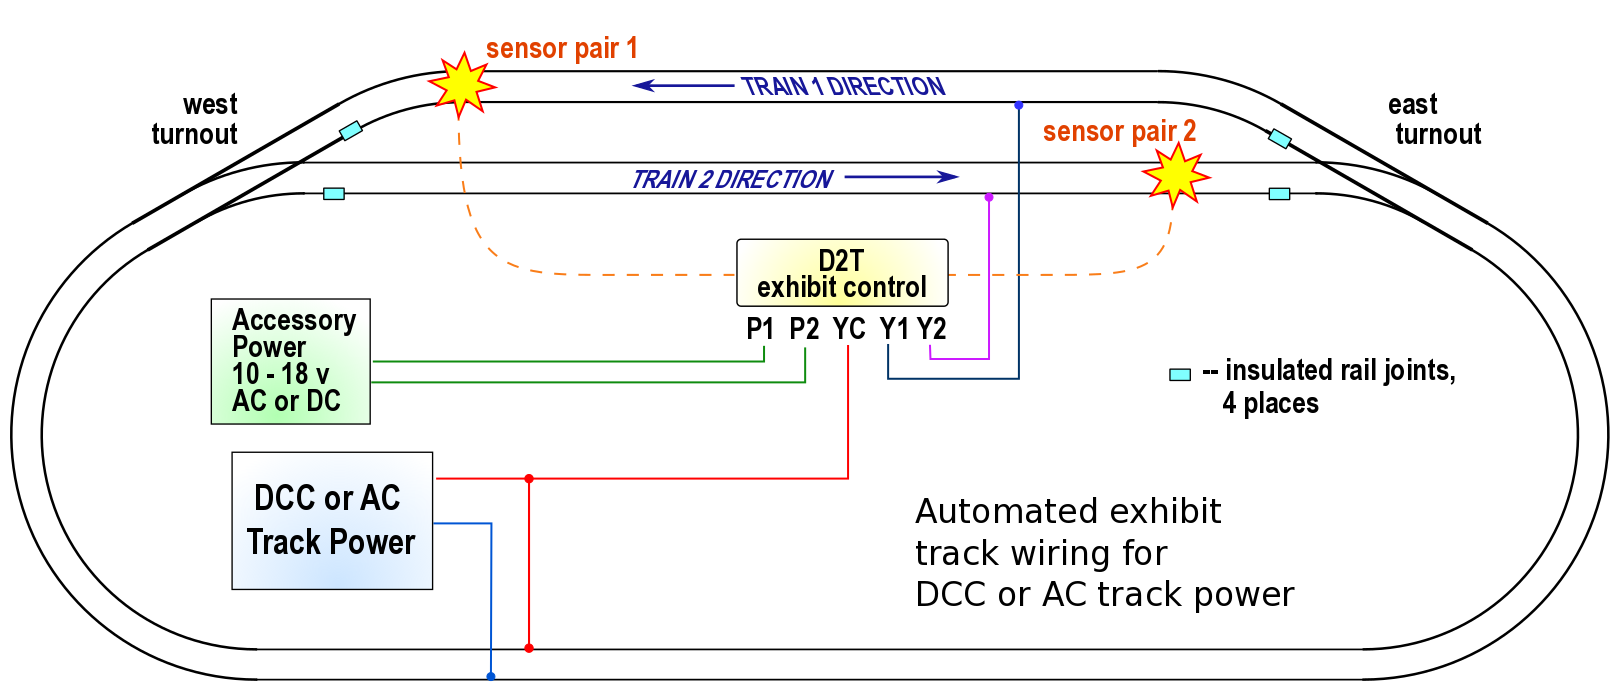 loop wiring diagram for ac or dcc [ 1620 x 700 Pixel ]